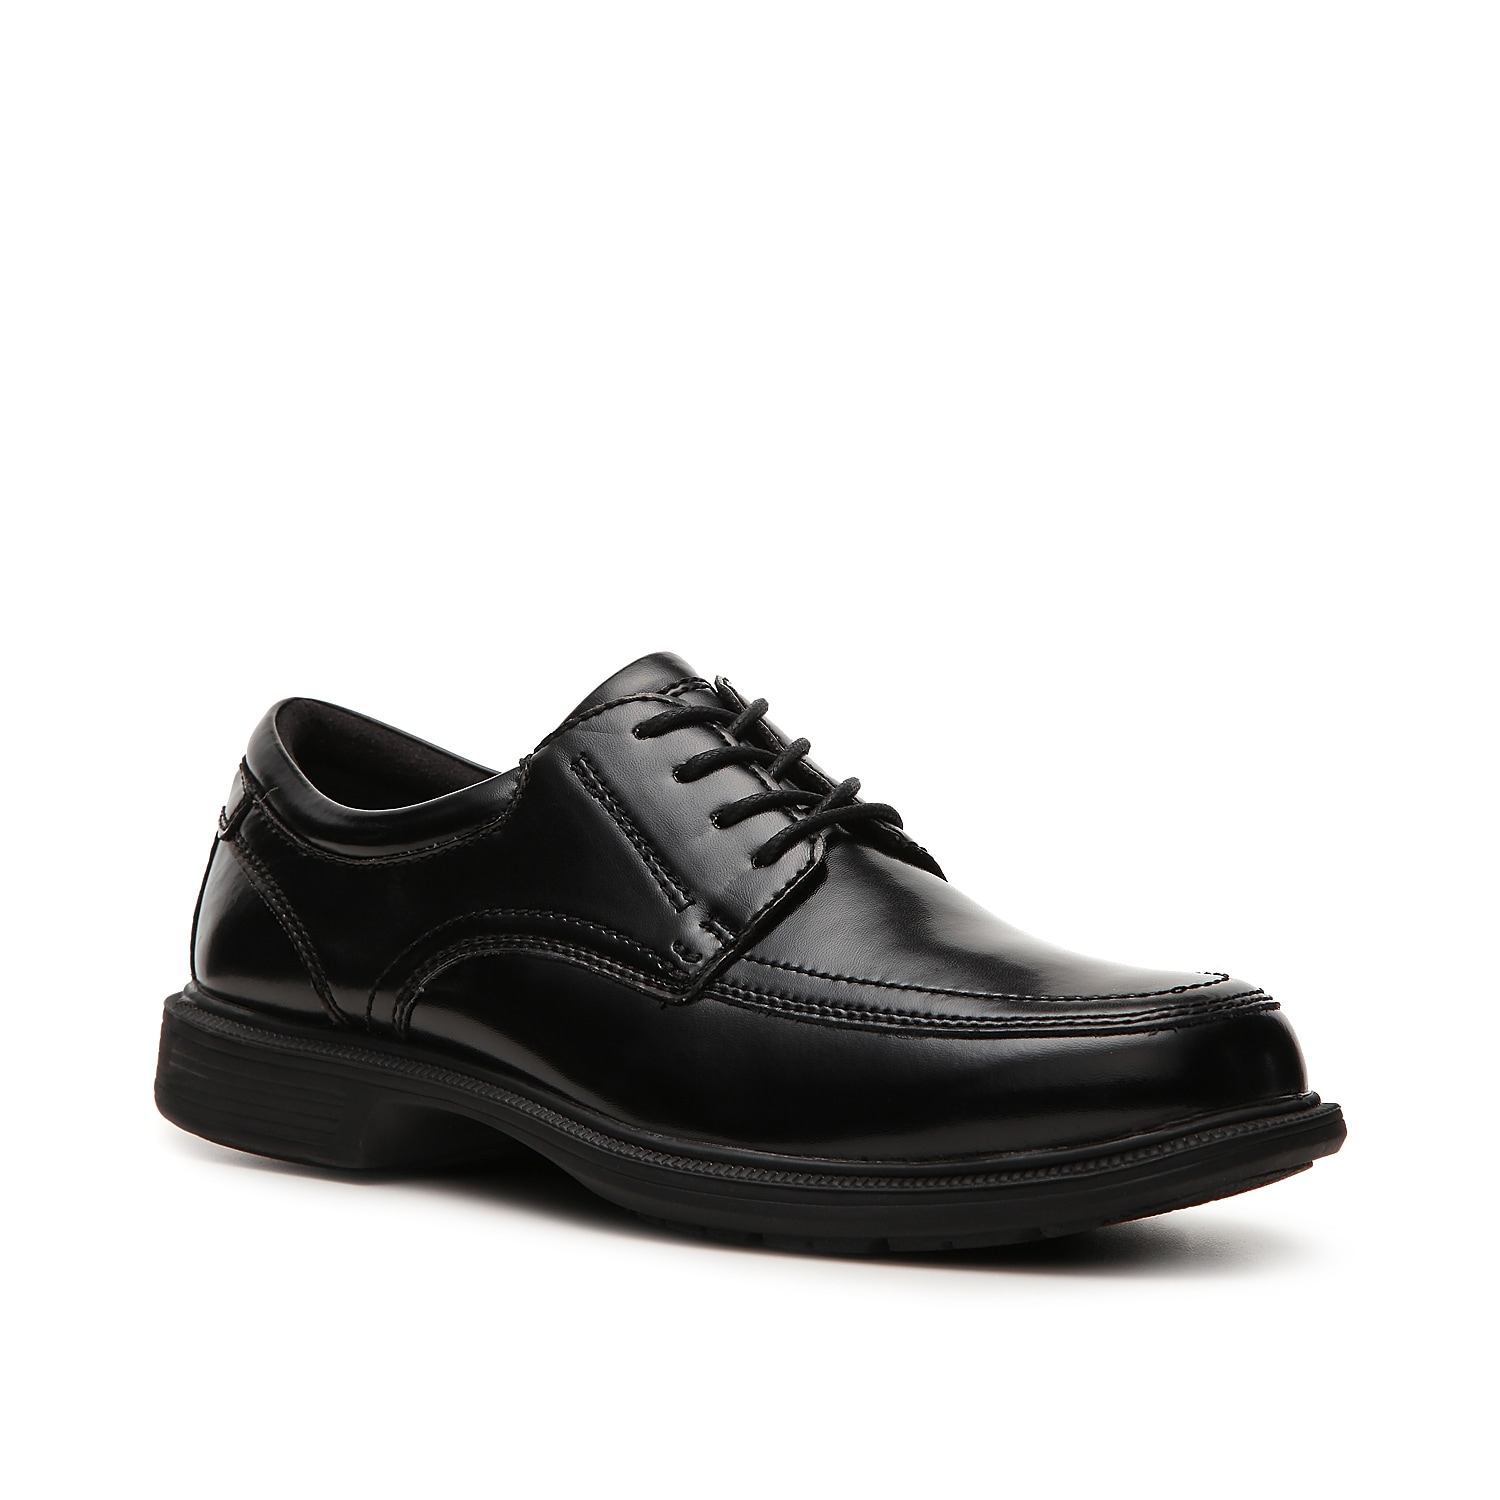 Put your best looking foot forward in the Bourbon Street oxford from Nunn Bush. With quality craftsmanship and comfort features, this leather lace-up shoe will become a favorite in no time!